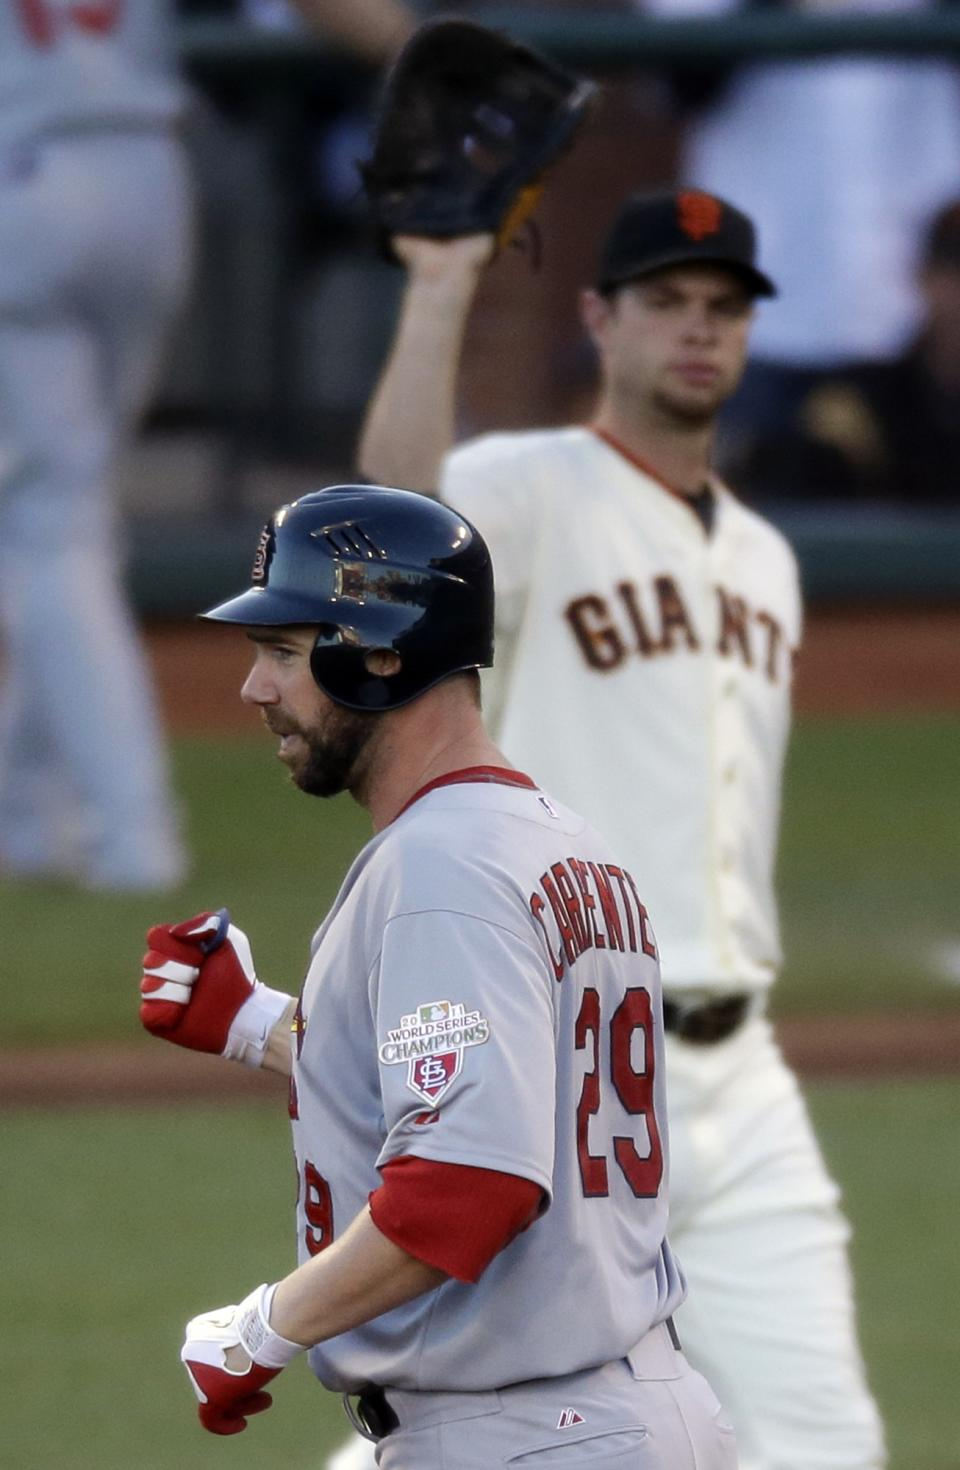 St. Louis Cardinals' Chris Carpenter reacts after hitting an RBI double during the second inning of Game 2 of baseball's National League championship series against the San Francisco Giants Monday, Oct. 15, 2012, in San Francisco. (AP Photo/Mark Humphrey)